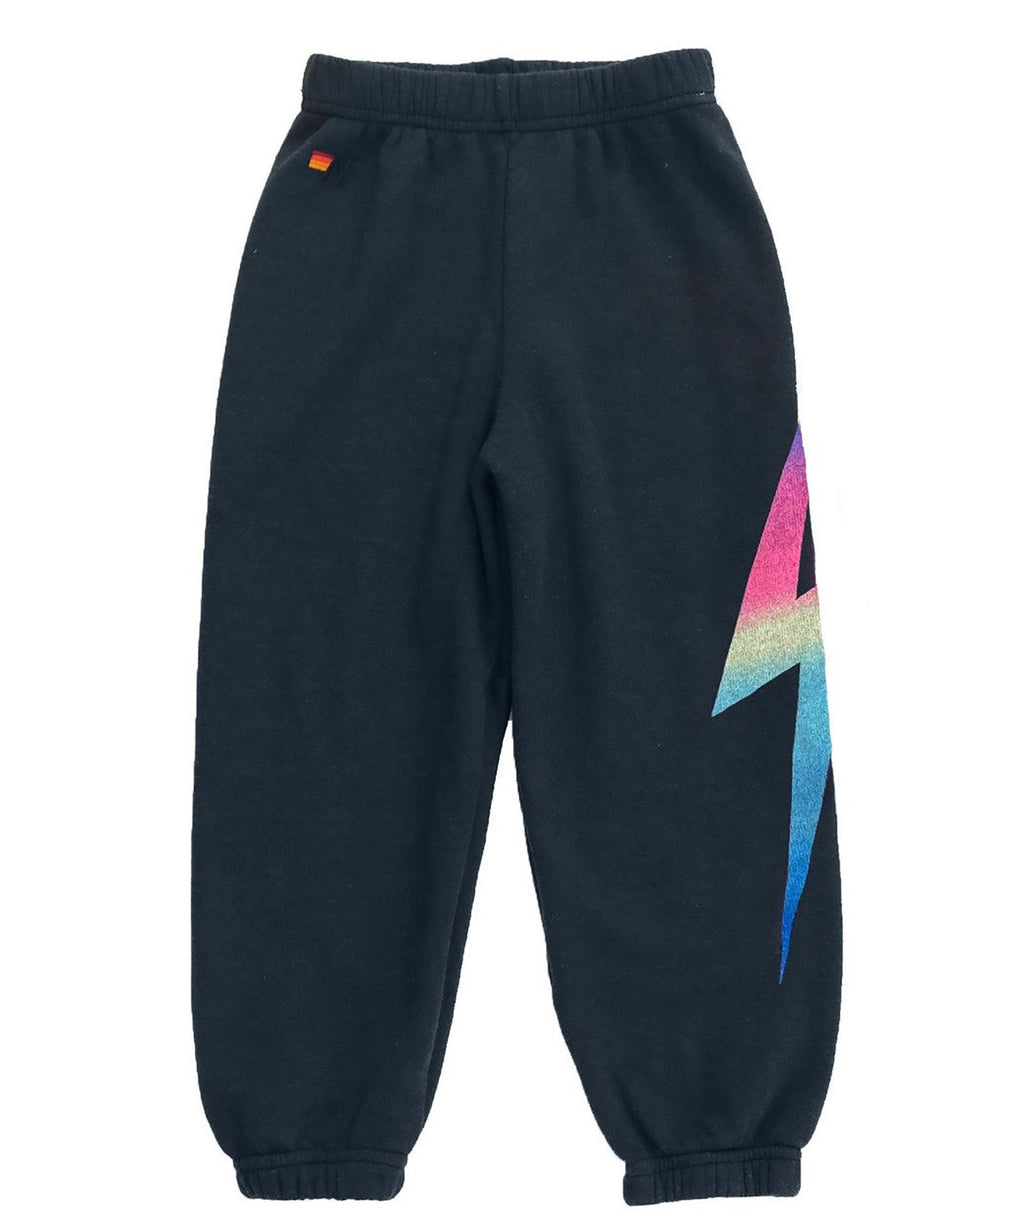 Aviator Nation Girls Charcoal Rainbow Pink Bolt Sweatpants